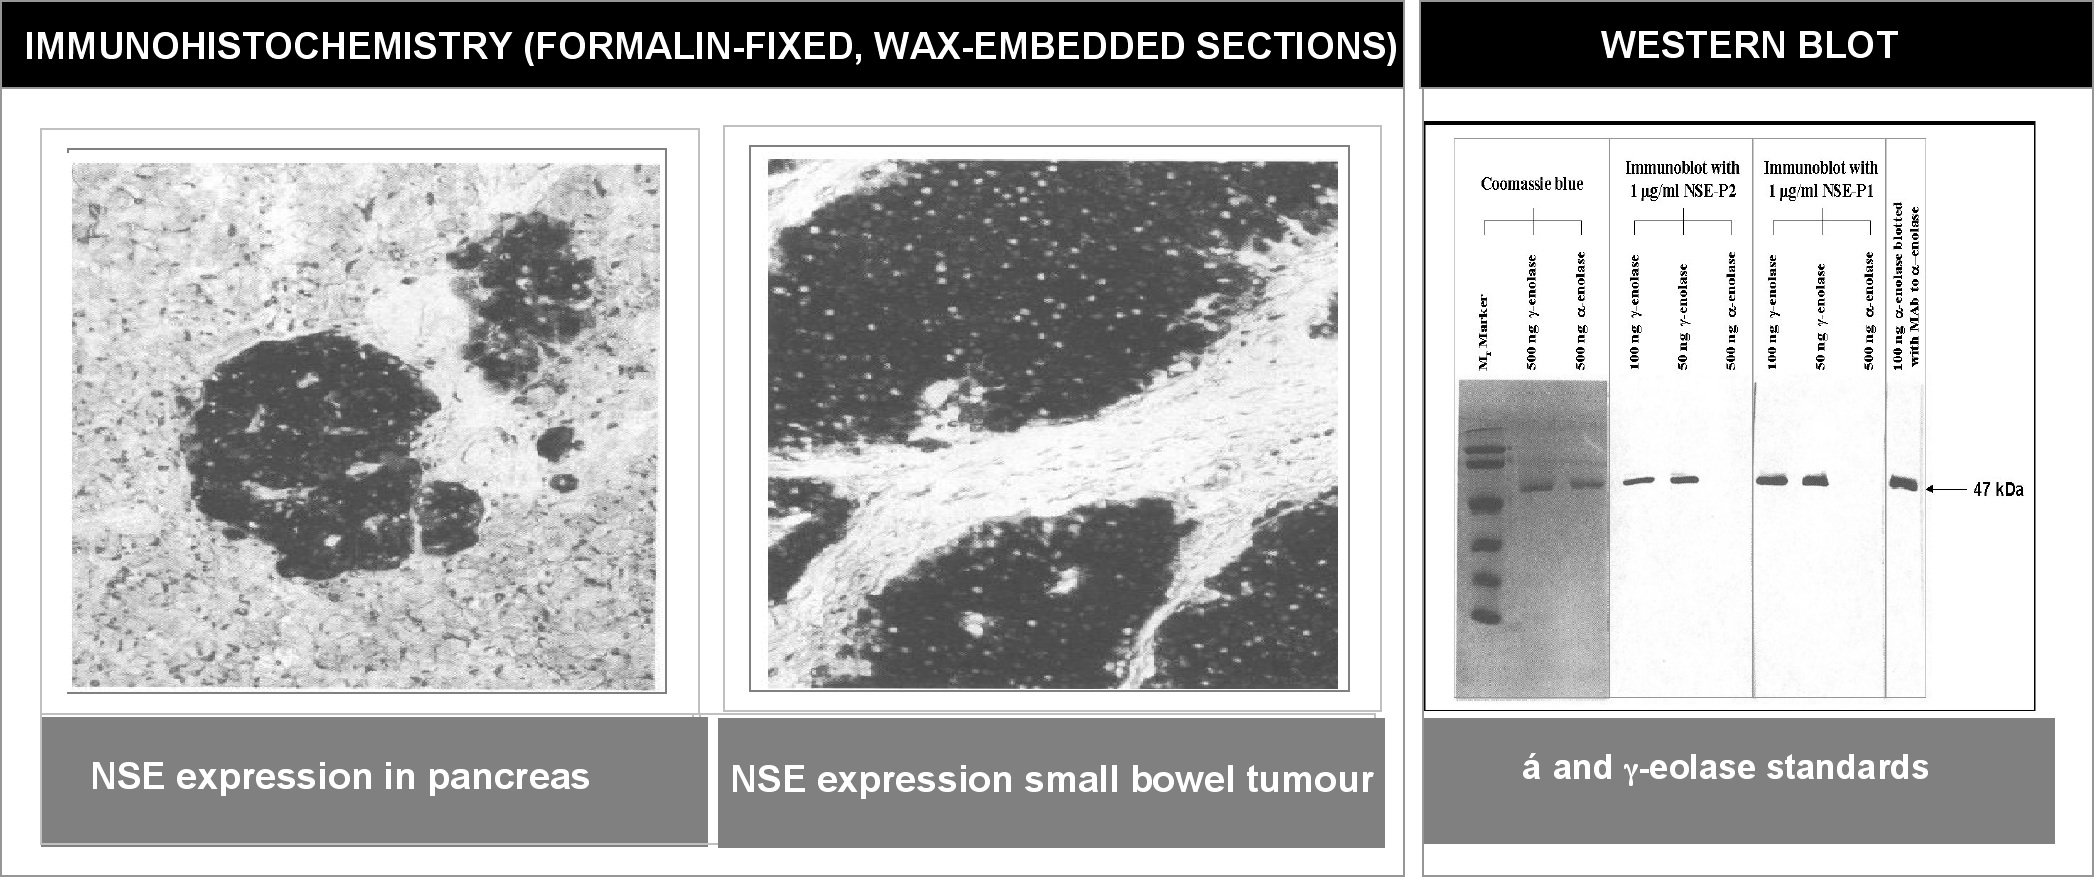 """""""Left and Center: Immunohistochemical staining of normal pancreas tissue (left) and small bowel tumor tissue (center) using NSE antibody (X2070M and X2071M). Right: Western blot analysis using NSE antibodies (X2070M and X2071M) on α and γ enolase standards."""""""